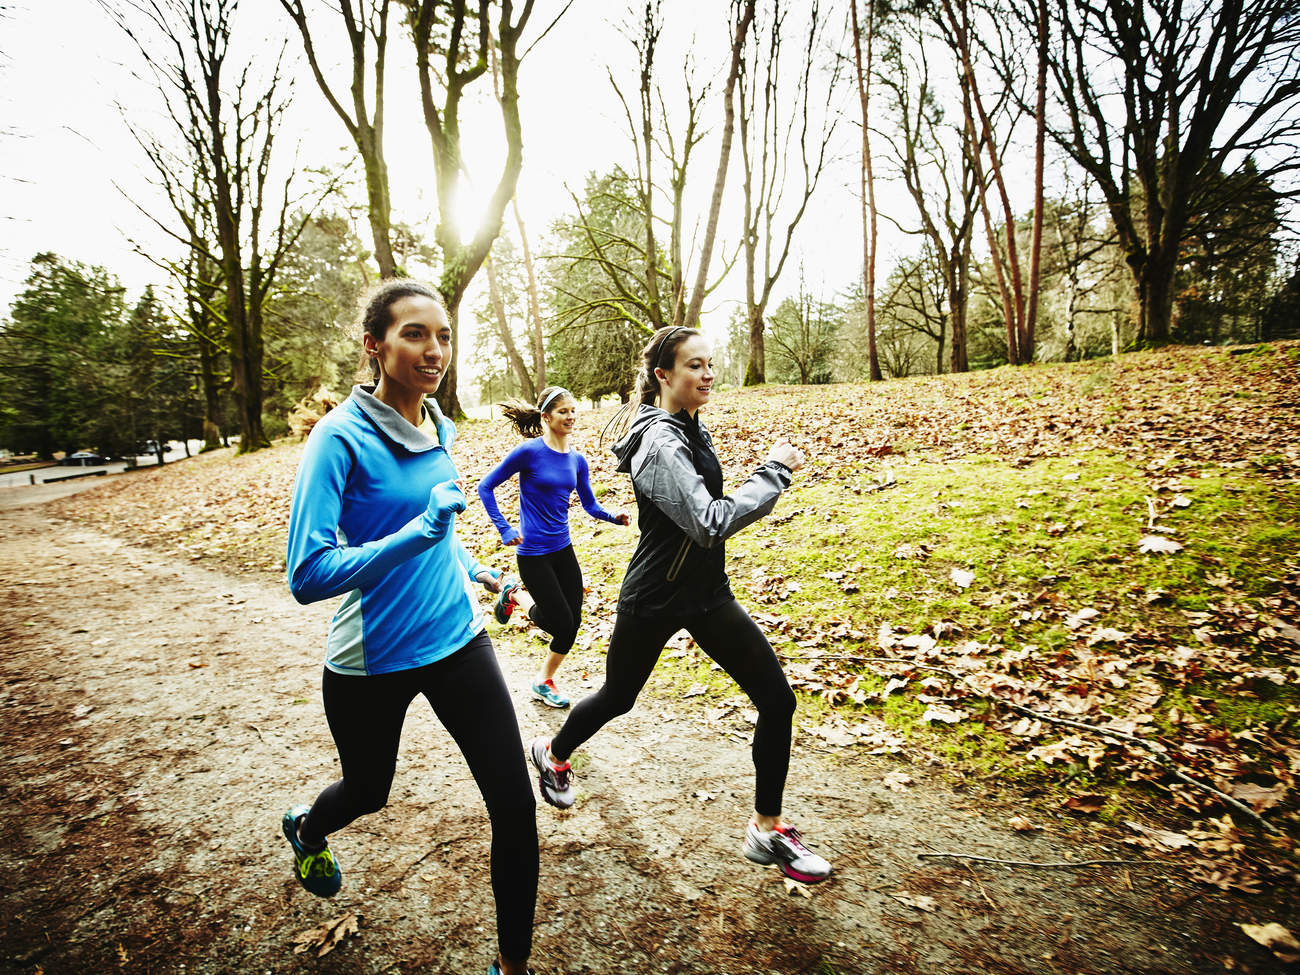 friendship running exercise outside fall healthy thanksgiving jacket group